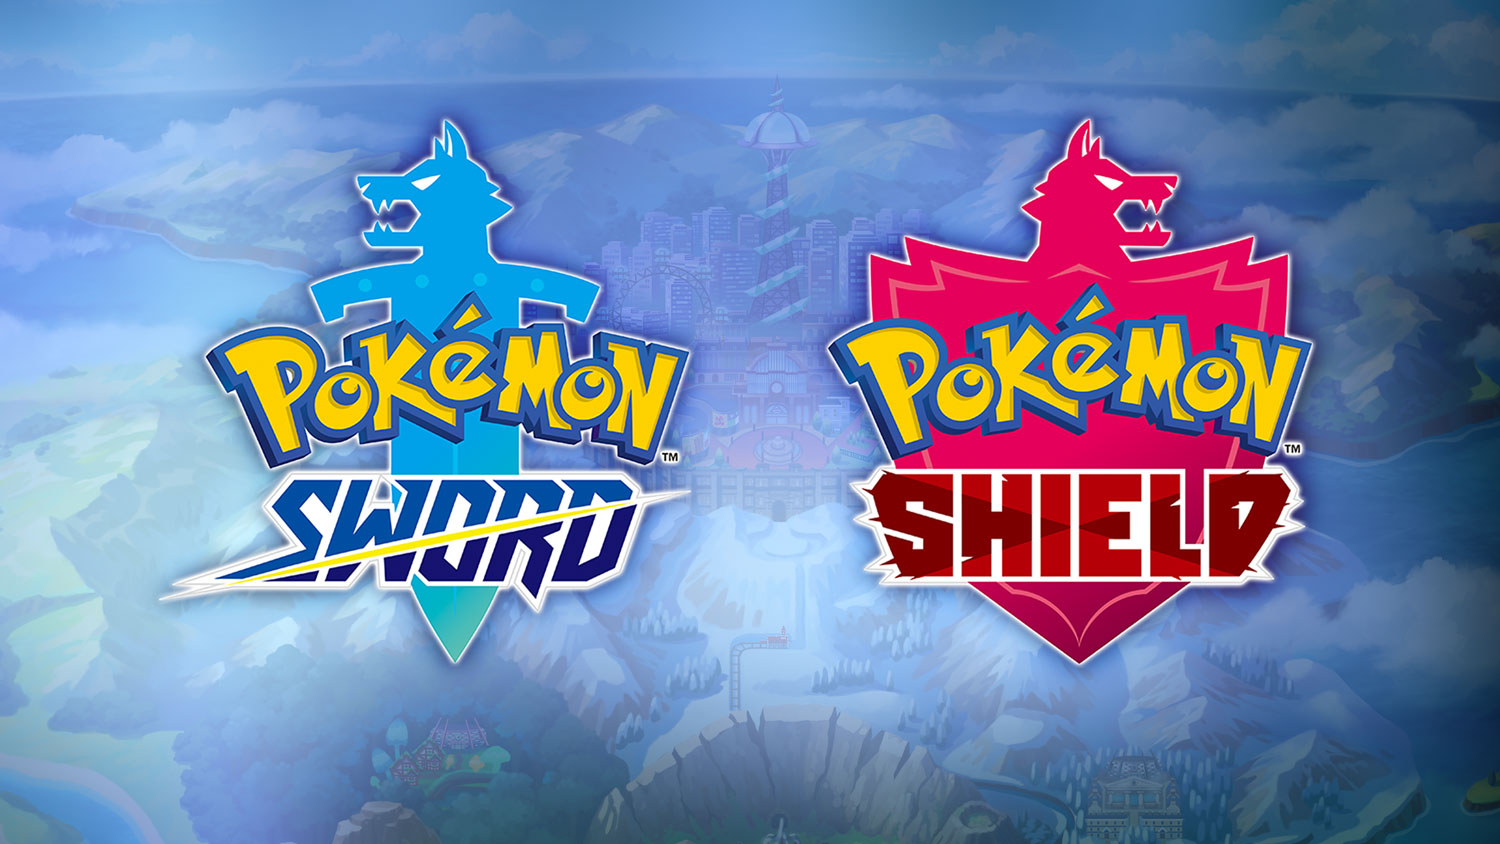 Pokemon Sword/Shield director elaborates on having all party members automatically gain experience